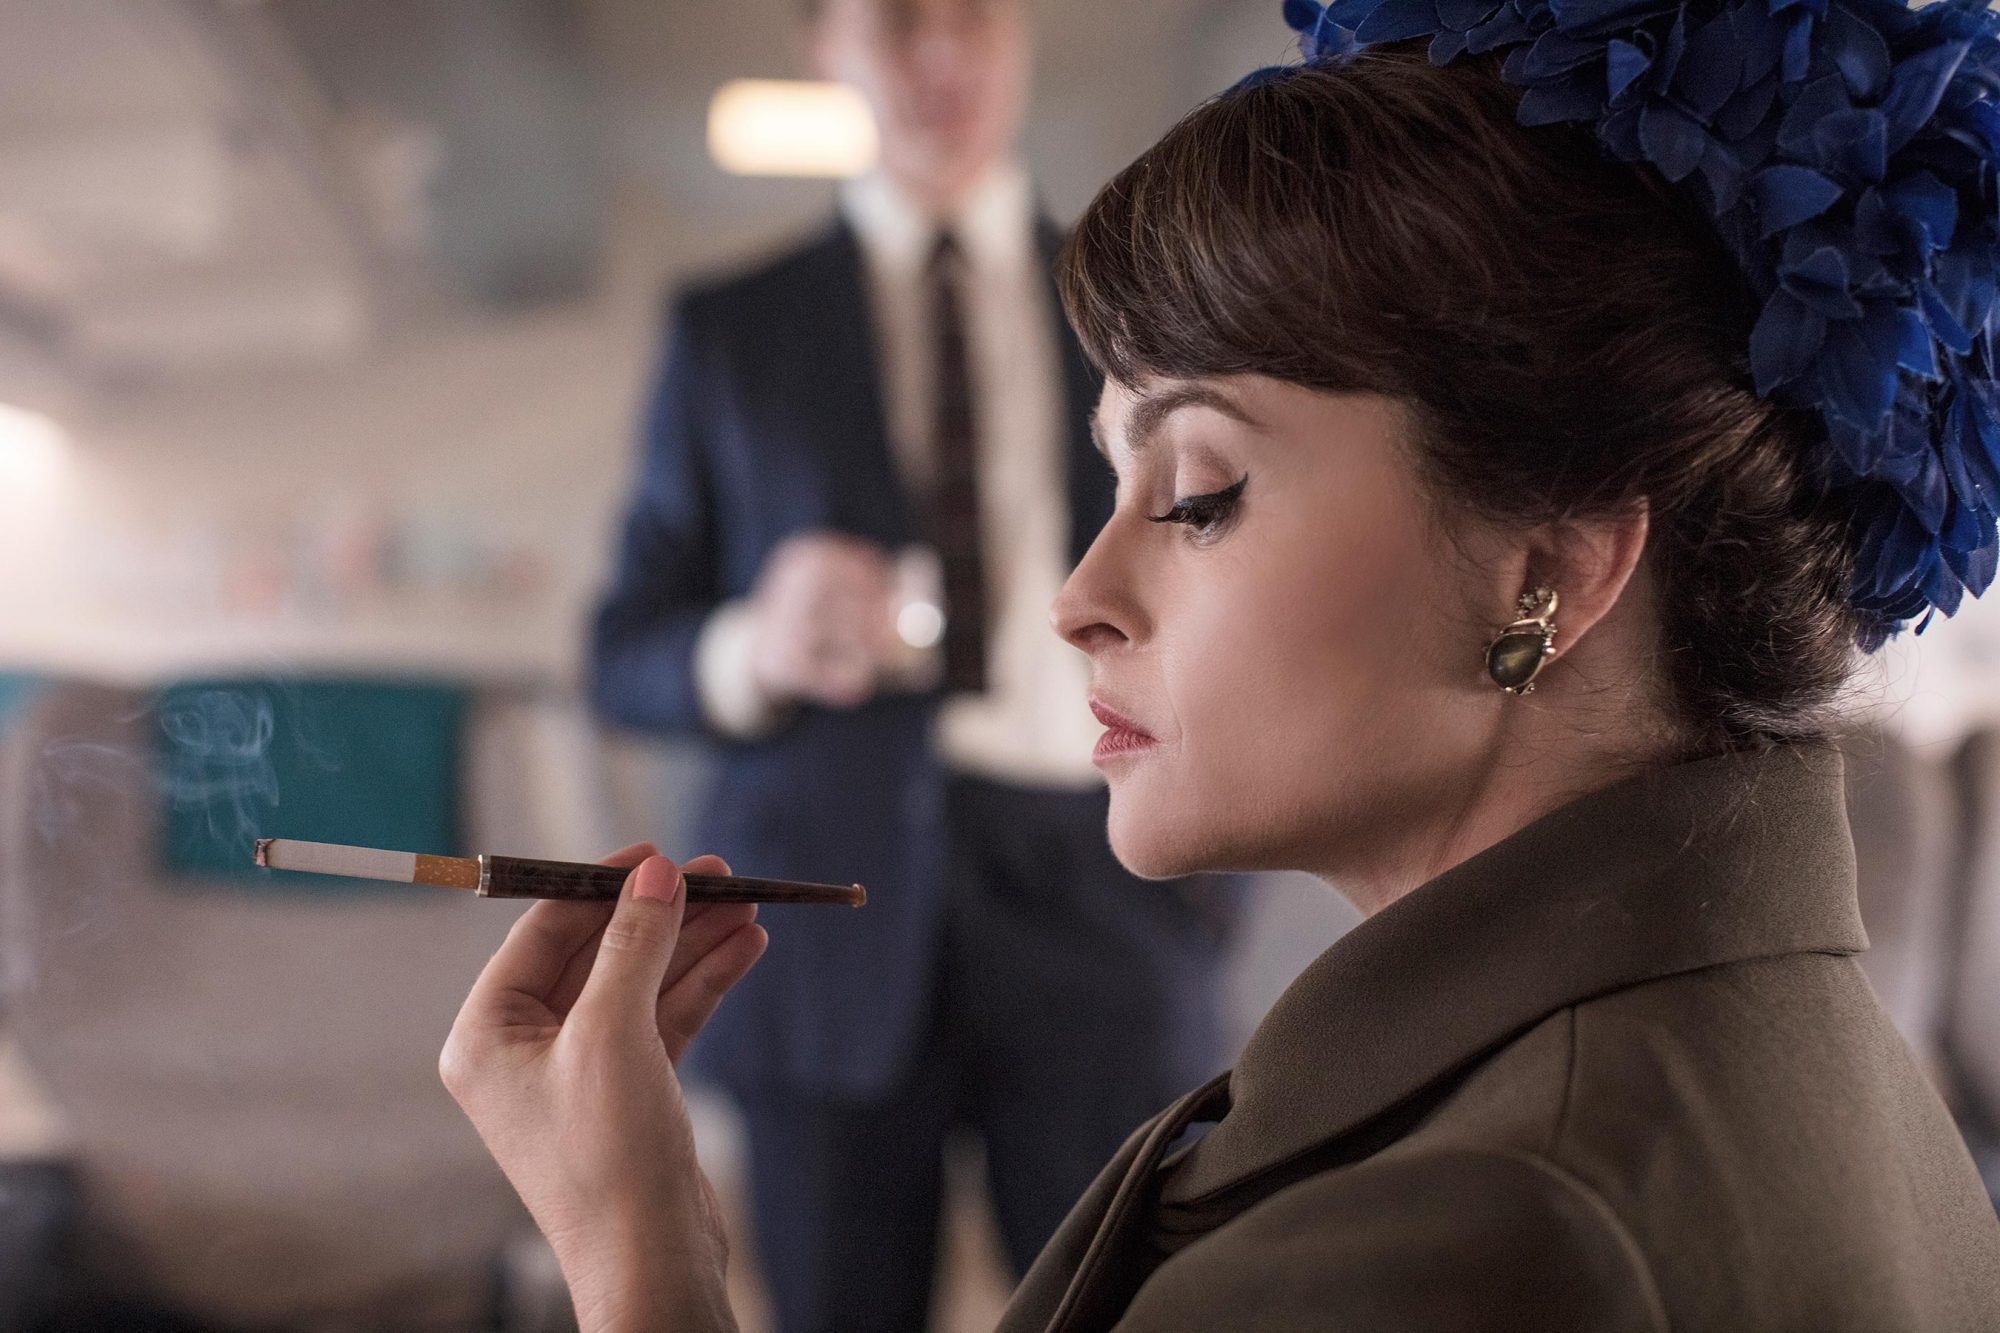 Helena Bonham Carter as Princess Margaret (season 3)